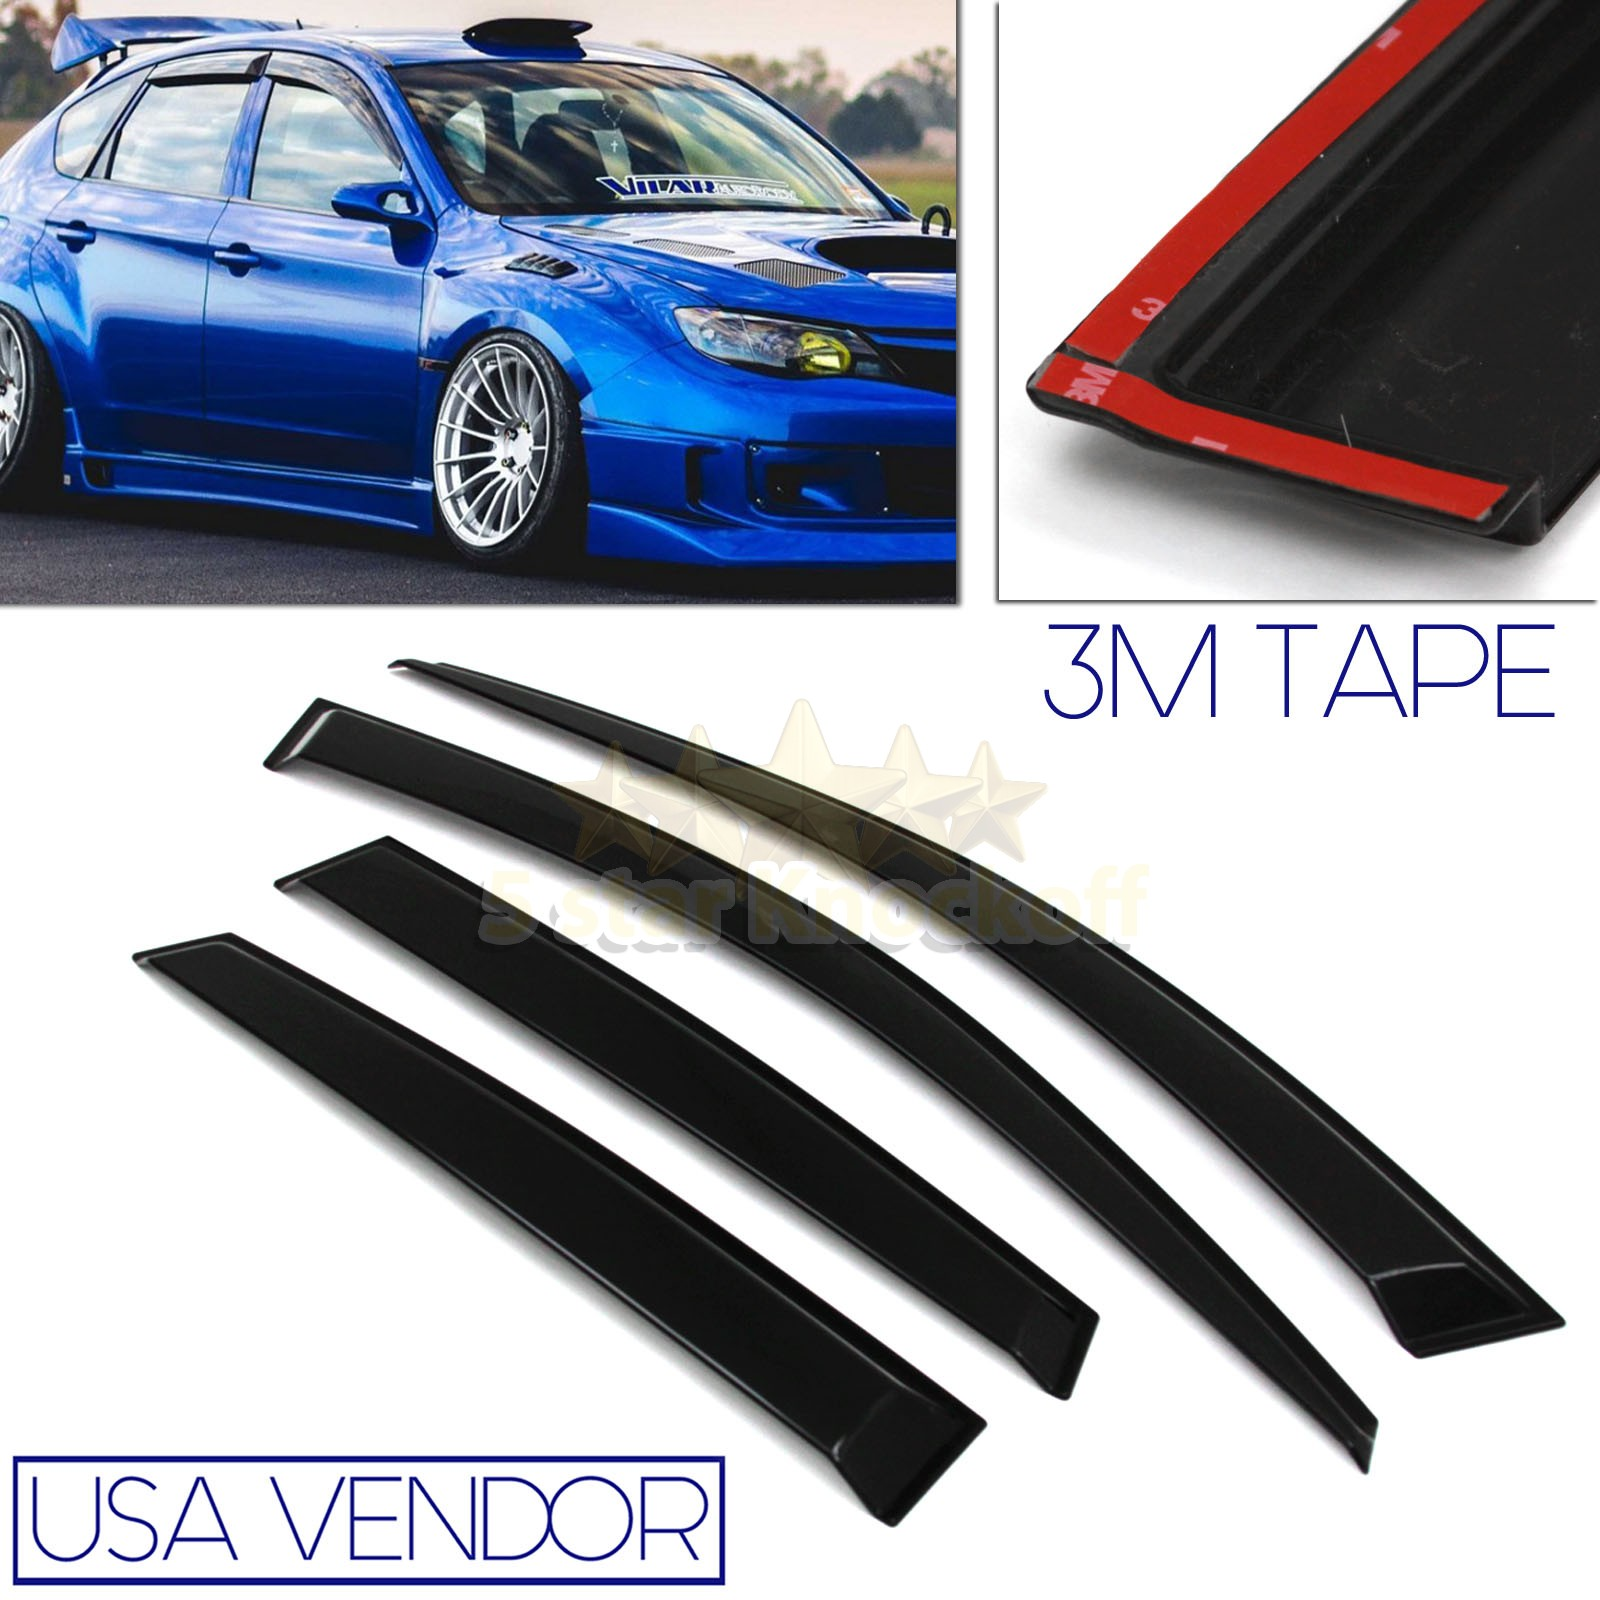 FOR 08 11 SUBARU SEDAN USA WINDOW WIND DEFLECTOR RAIN GUARD BLACK